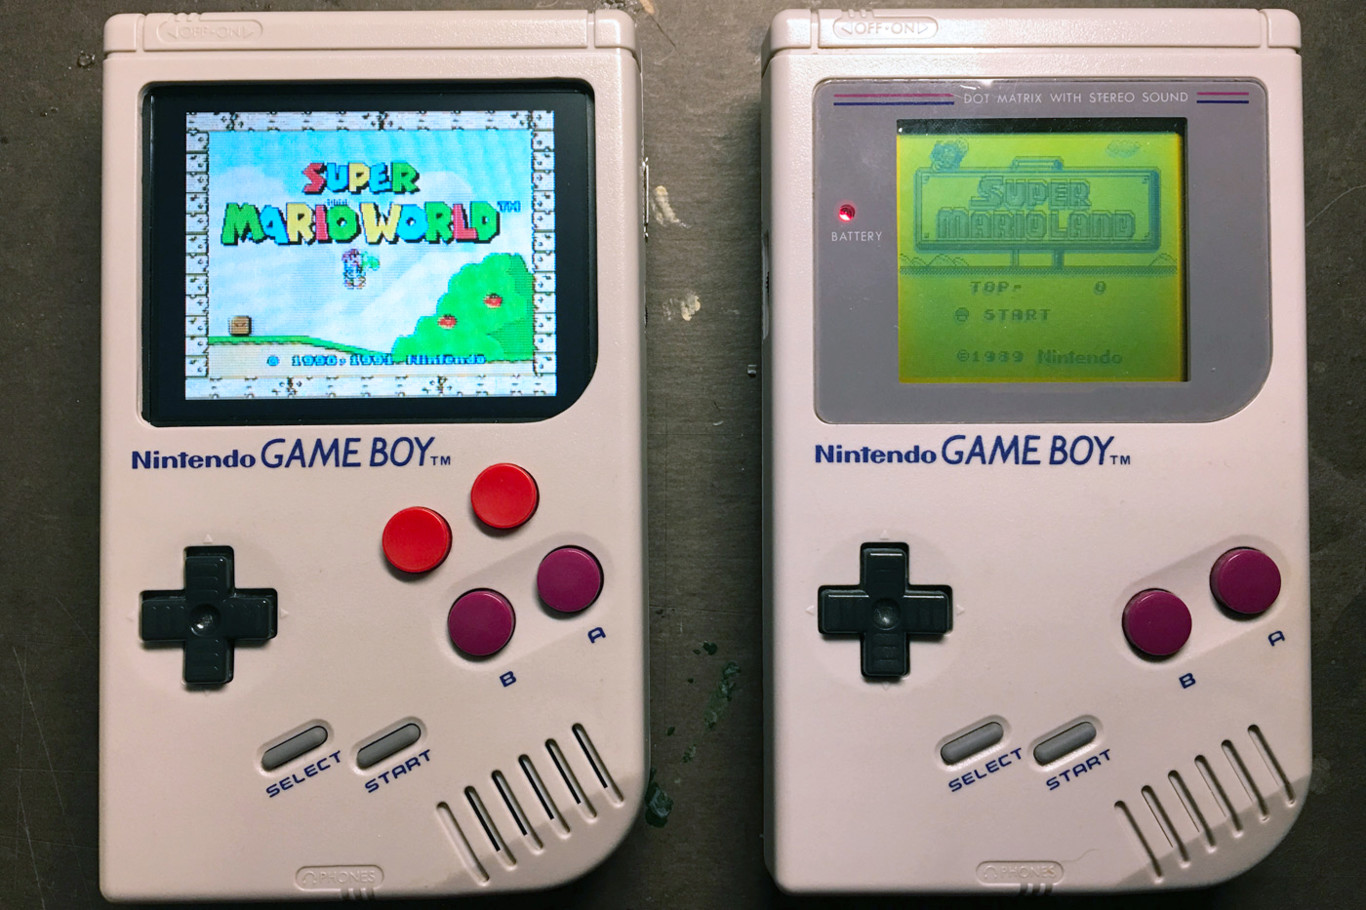 Construir emulador retro con una Game boy y un cartucho